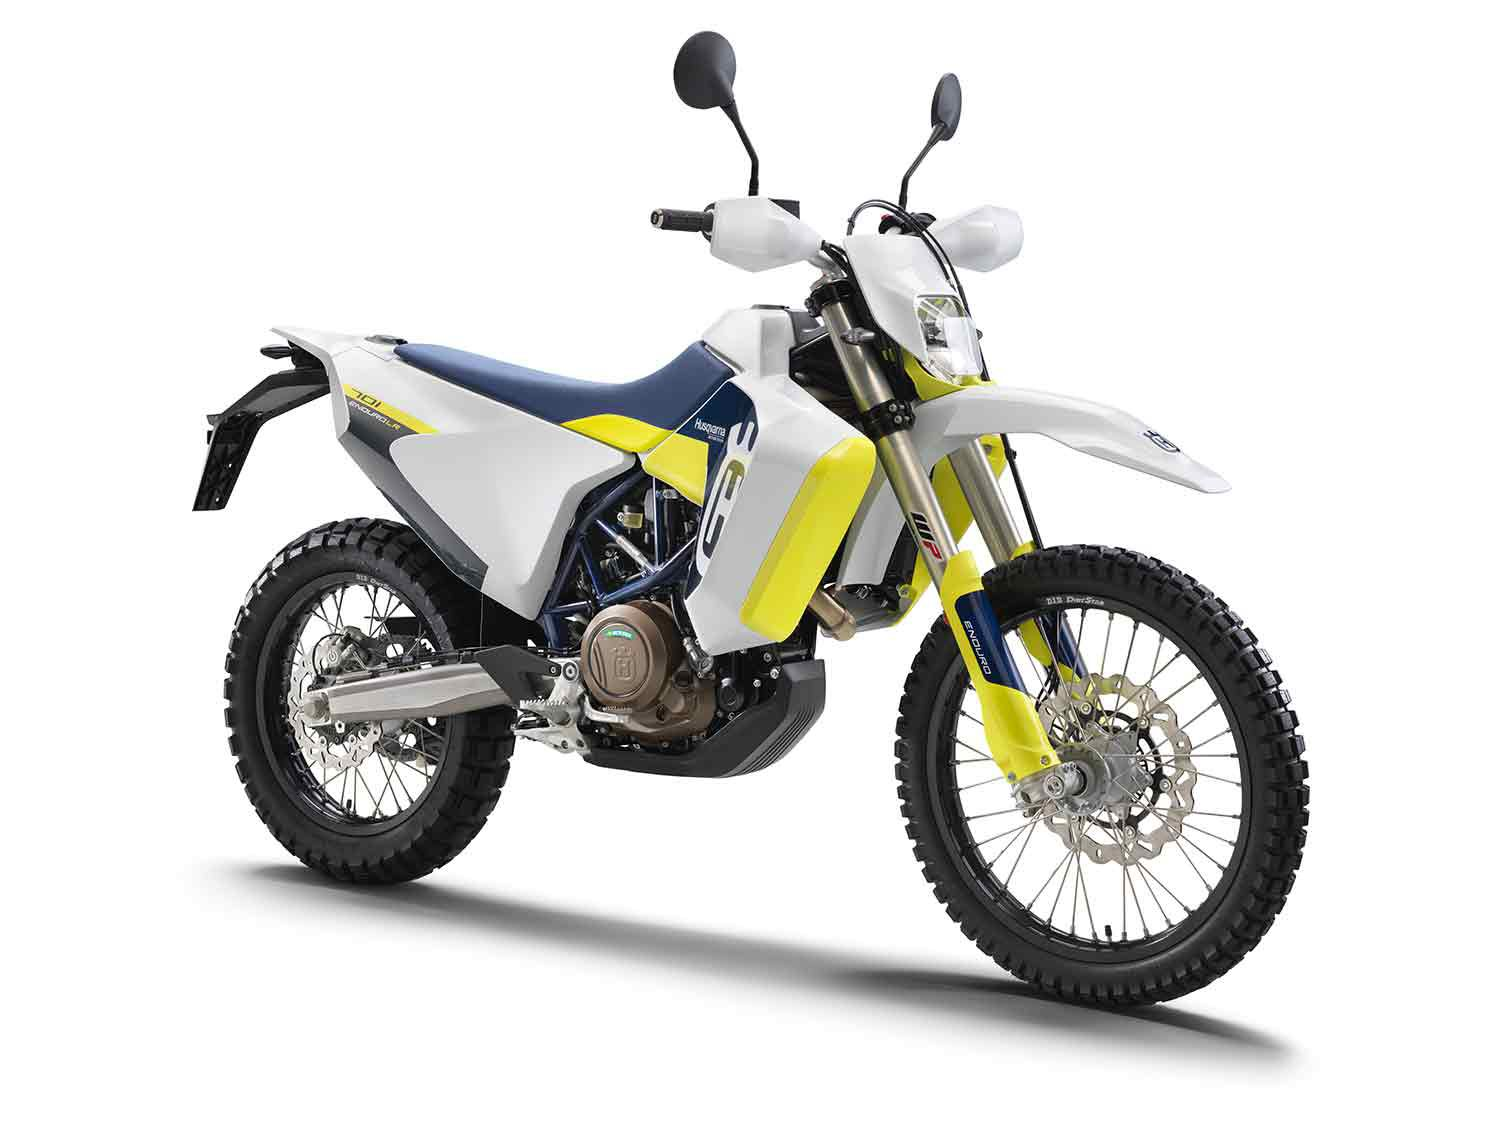 WP Xplor suspension front and rear is fully adjustable and provides 9.8 inches travel.